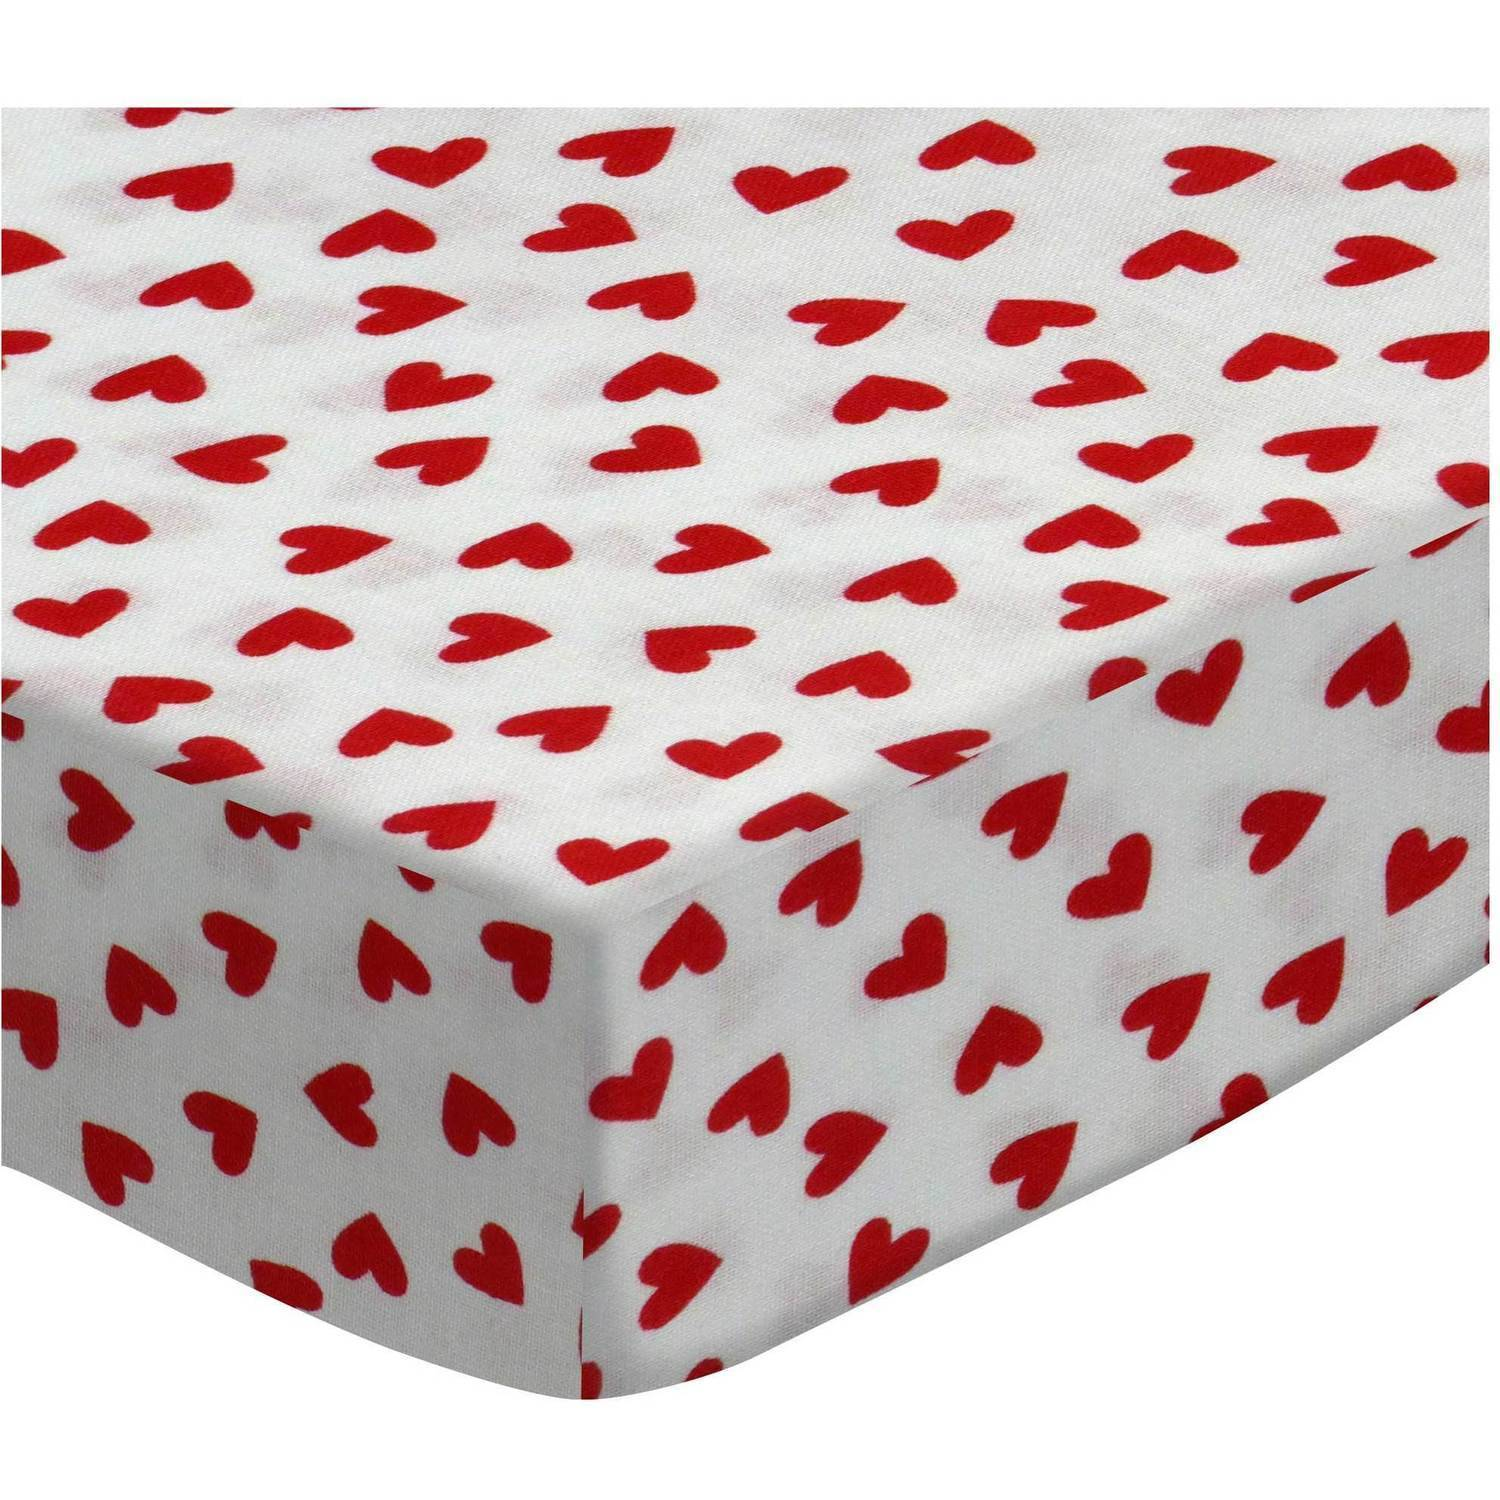 SheetWorld Fitted Sheet (Fits BabyBjorn Travel Crib Light) - Primary Hearts Red Woven